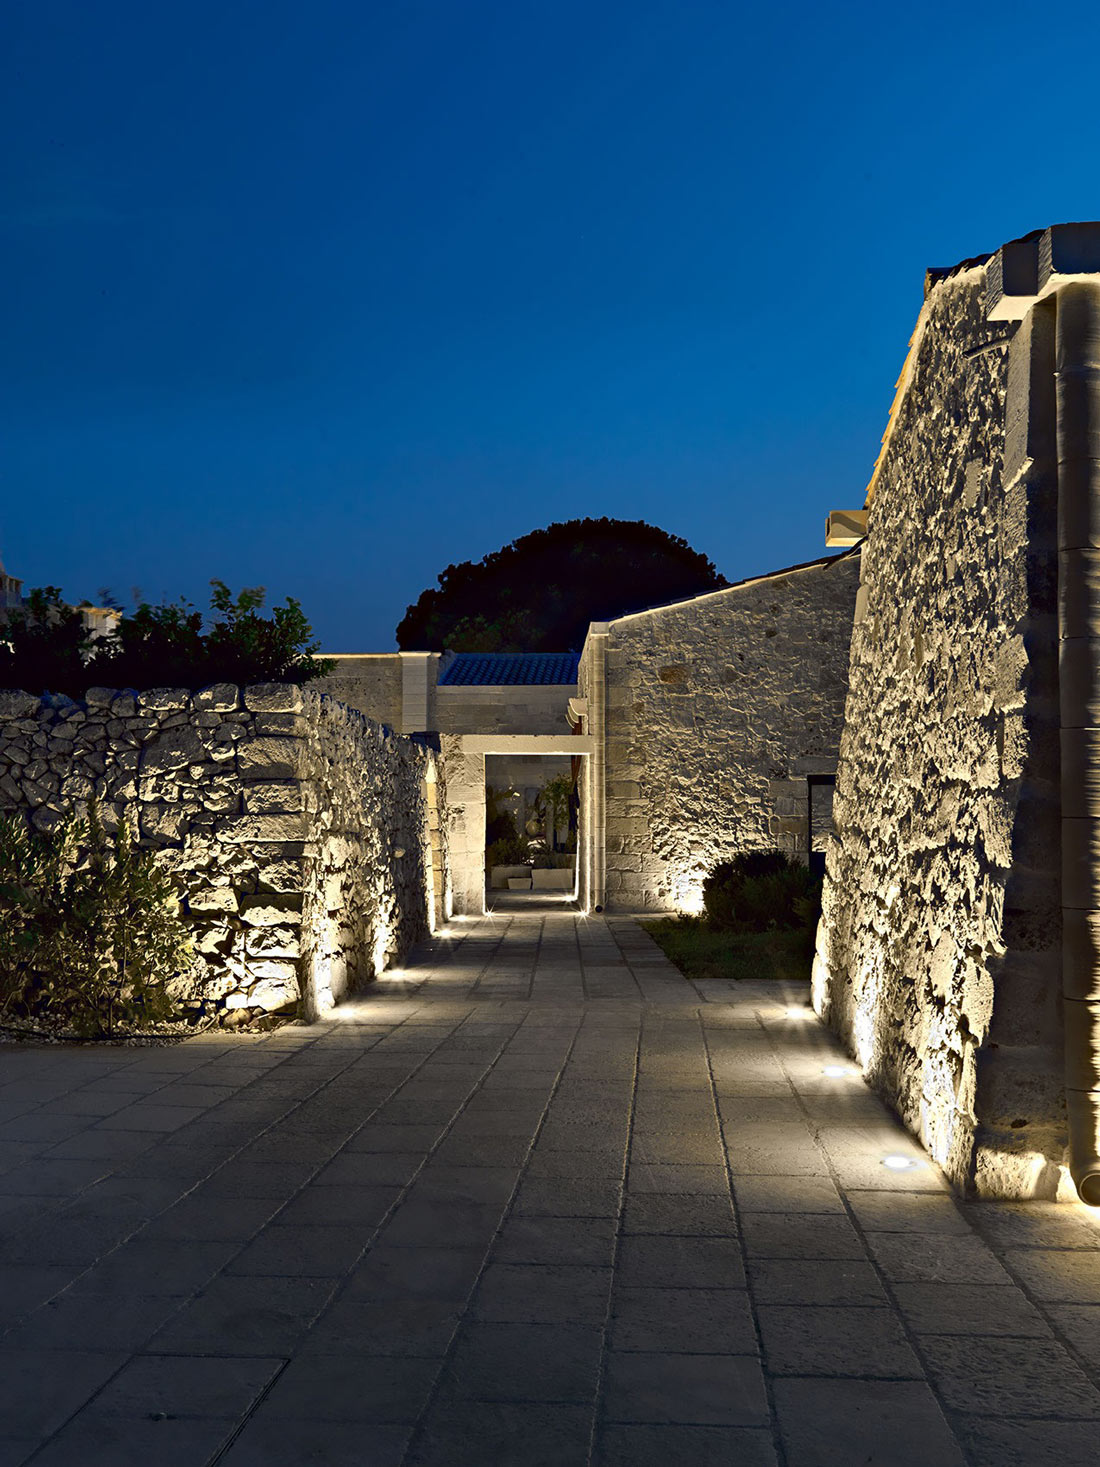 Evening Lighting, Stone Walls, Relais Masseria Capasa Hotel in Martano, Italy